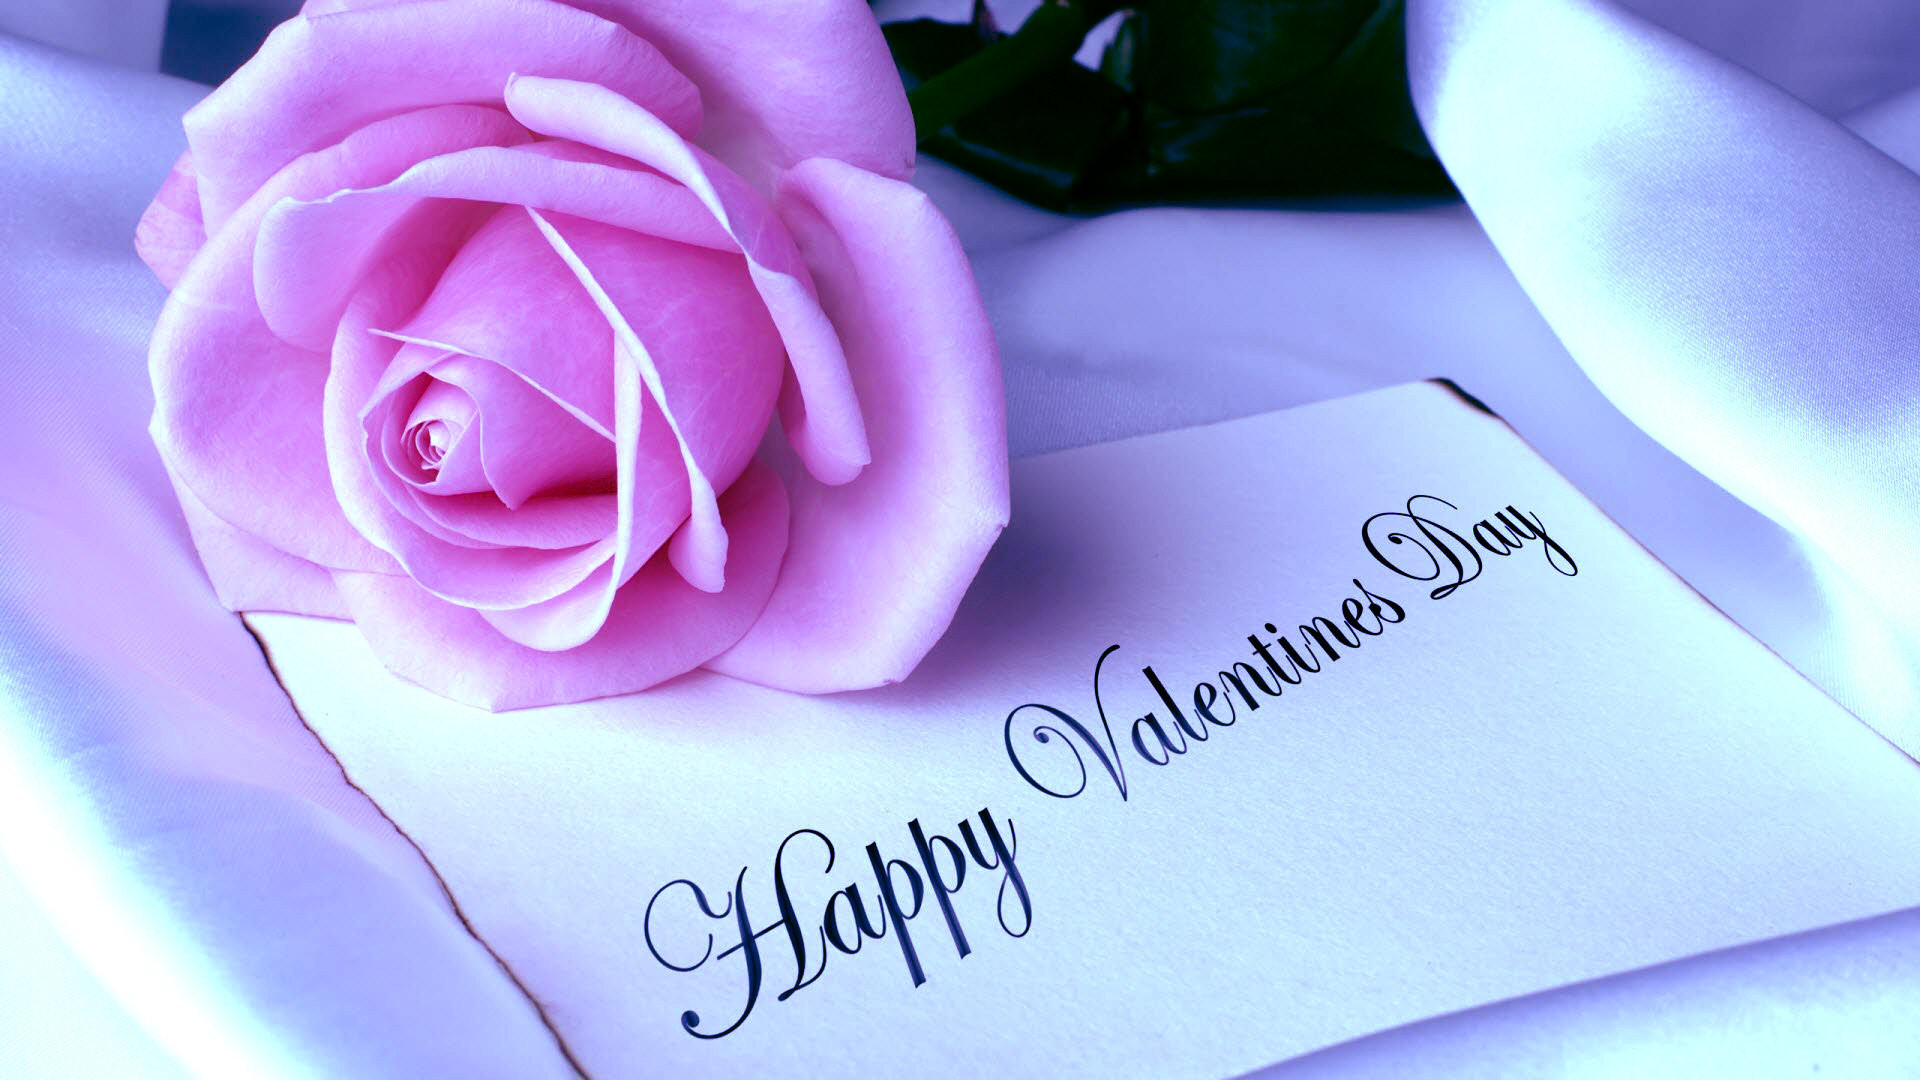 Valentine Day Wallpaper HD Images